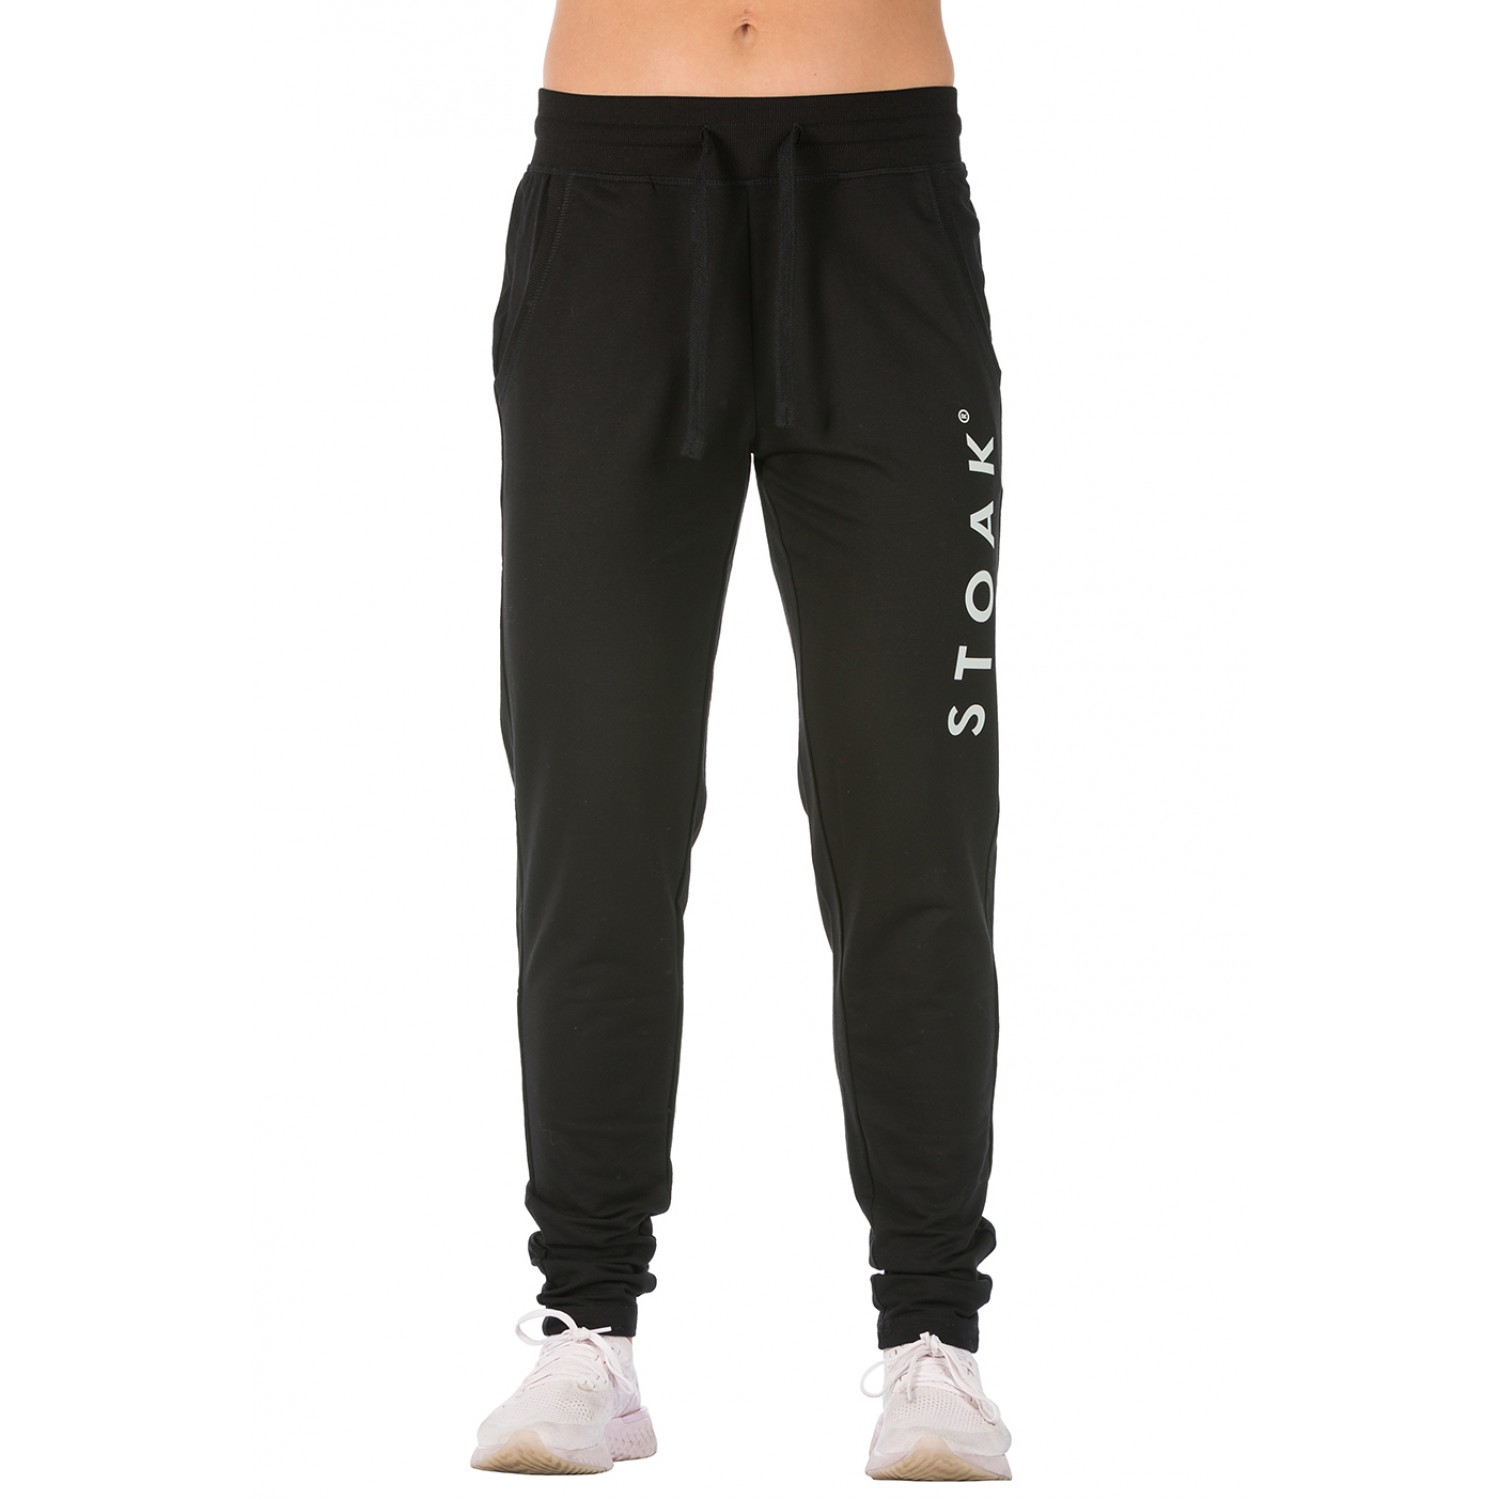 STOAK CARBON Women's  Jogger